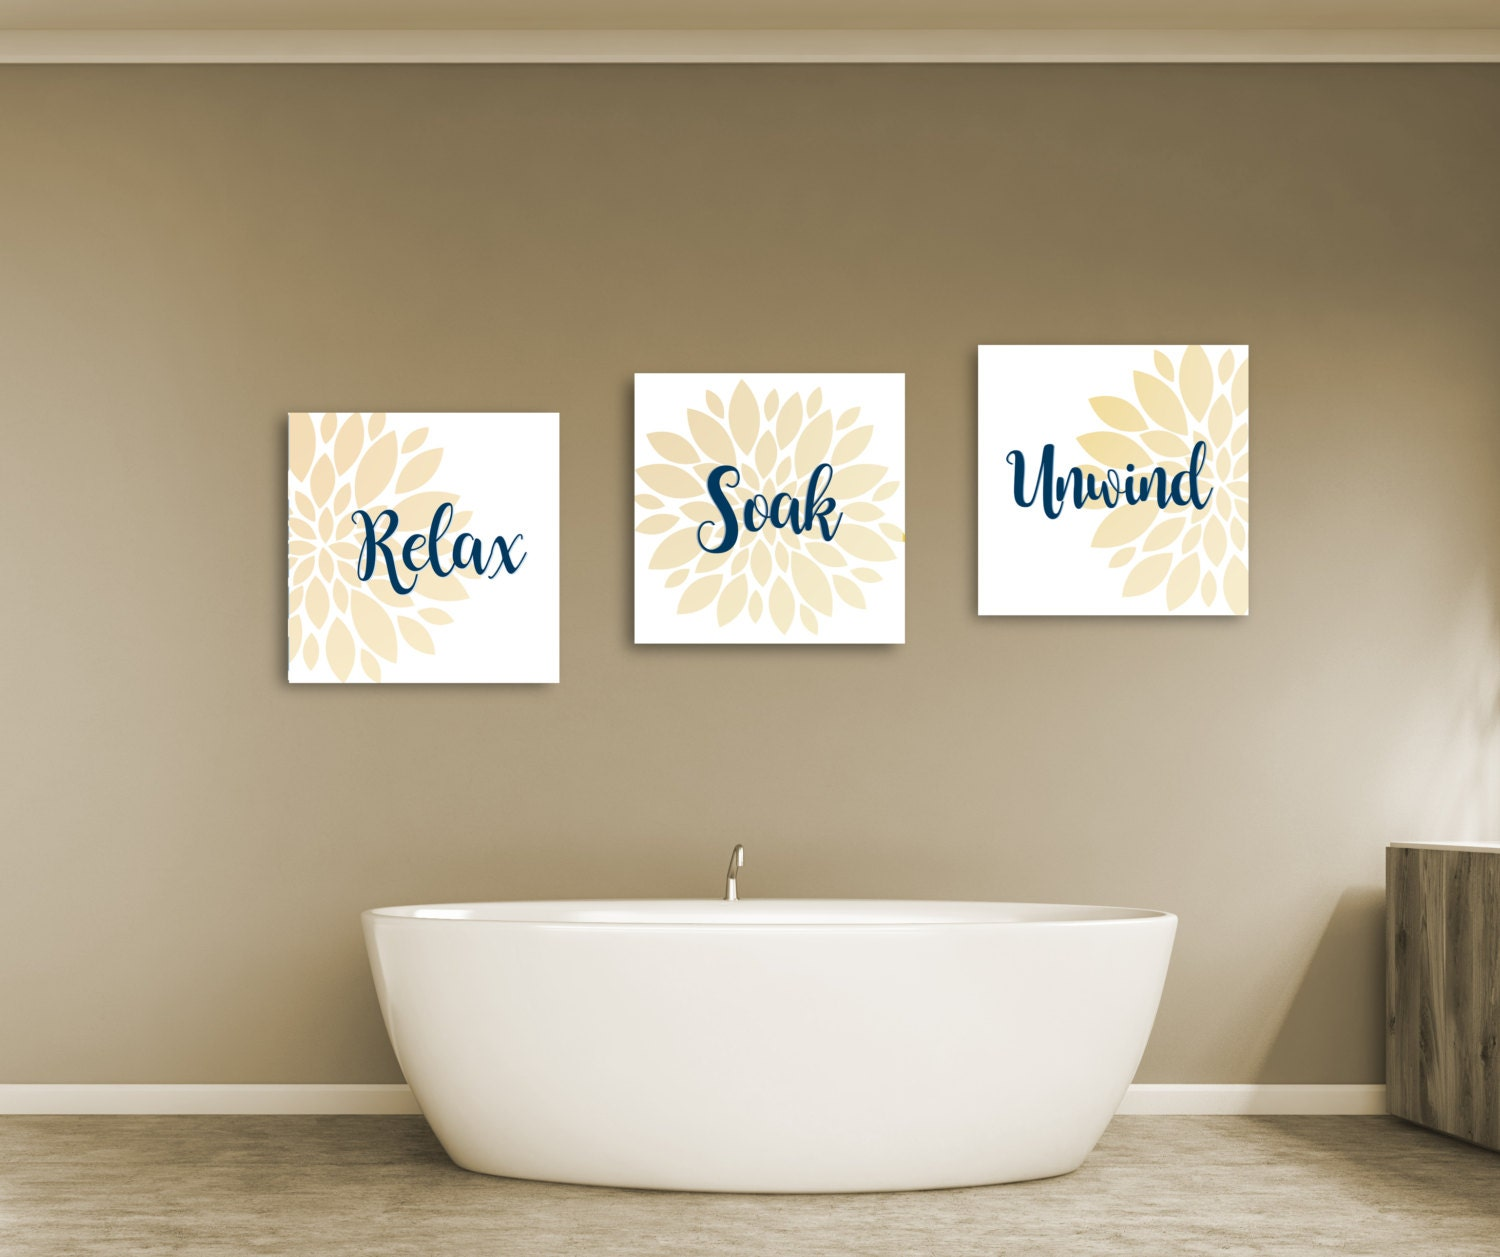 Bathroom Decor Bathroom Wall Art Relax Soak And Unwind